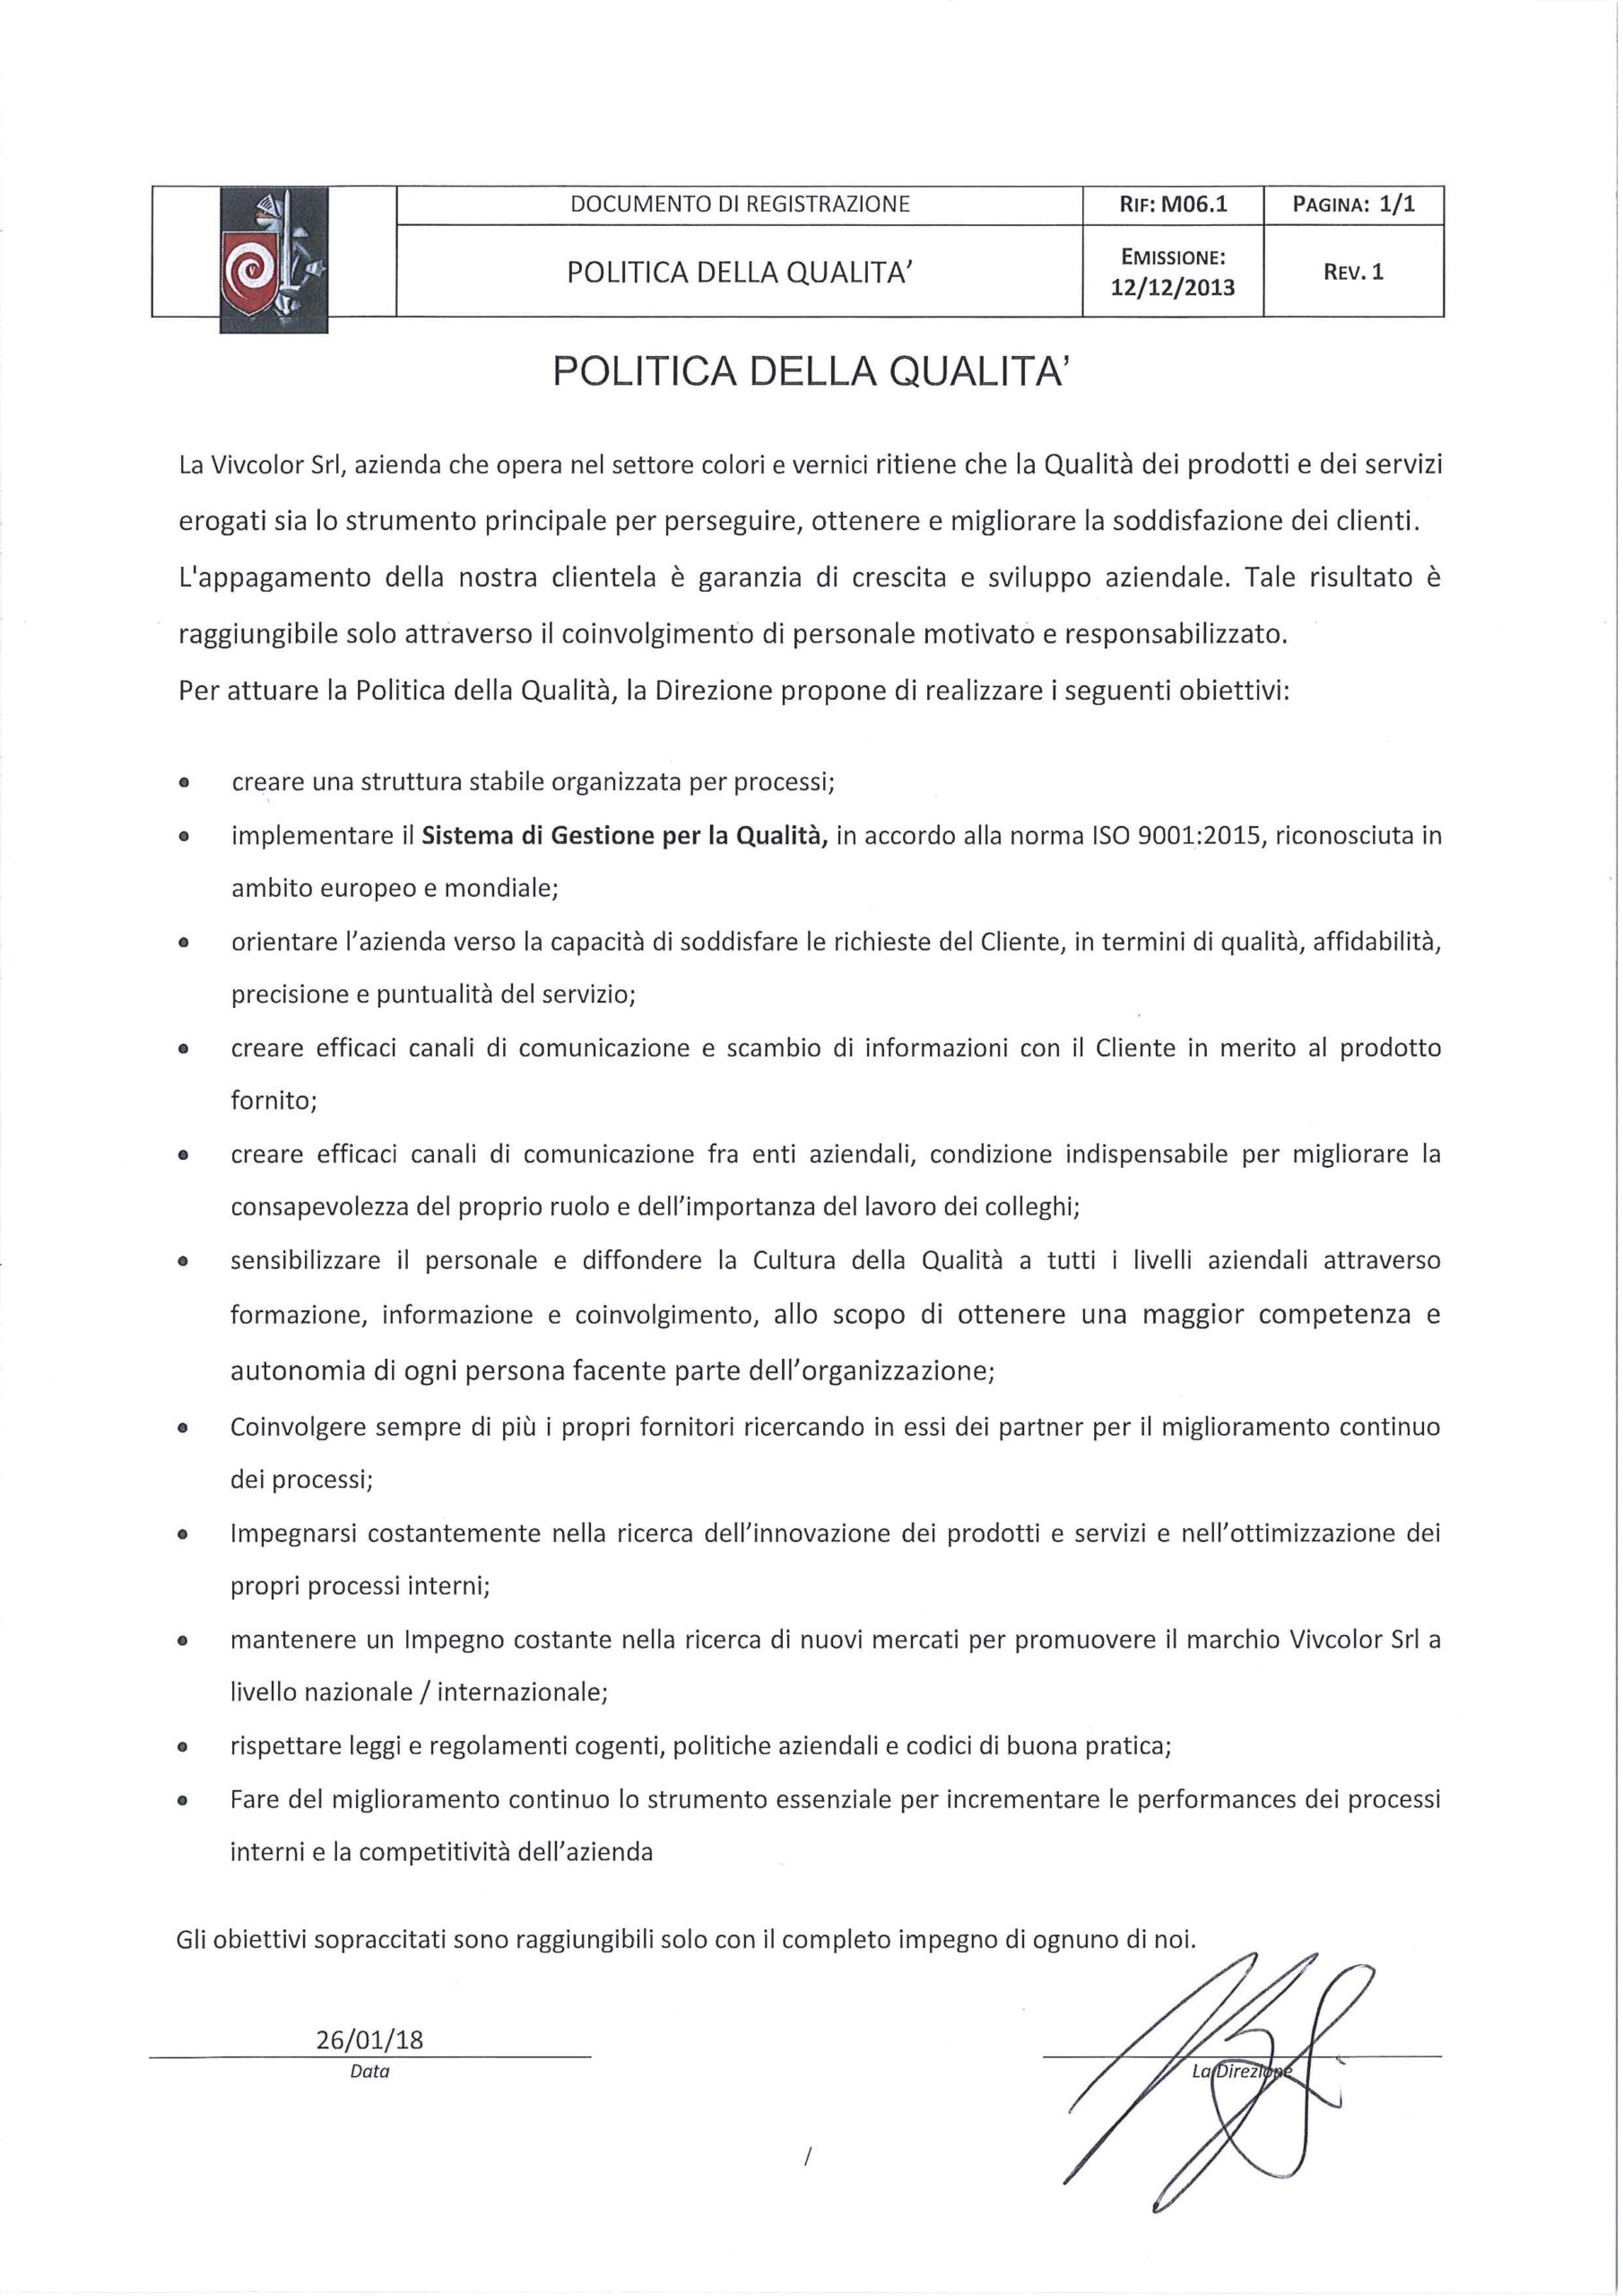 M 06.1 Politica per la qualità 26.01.18 rev.1 scaled